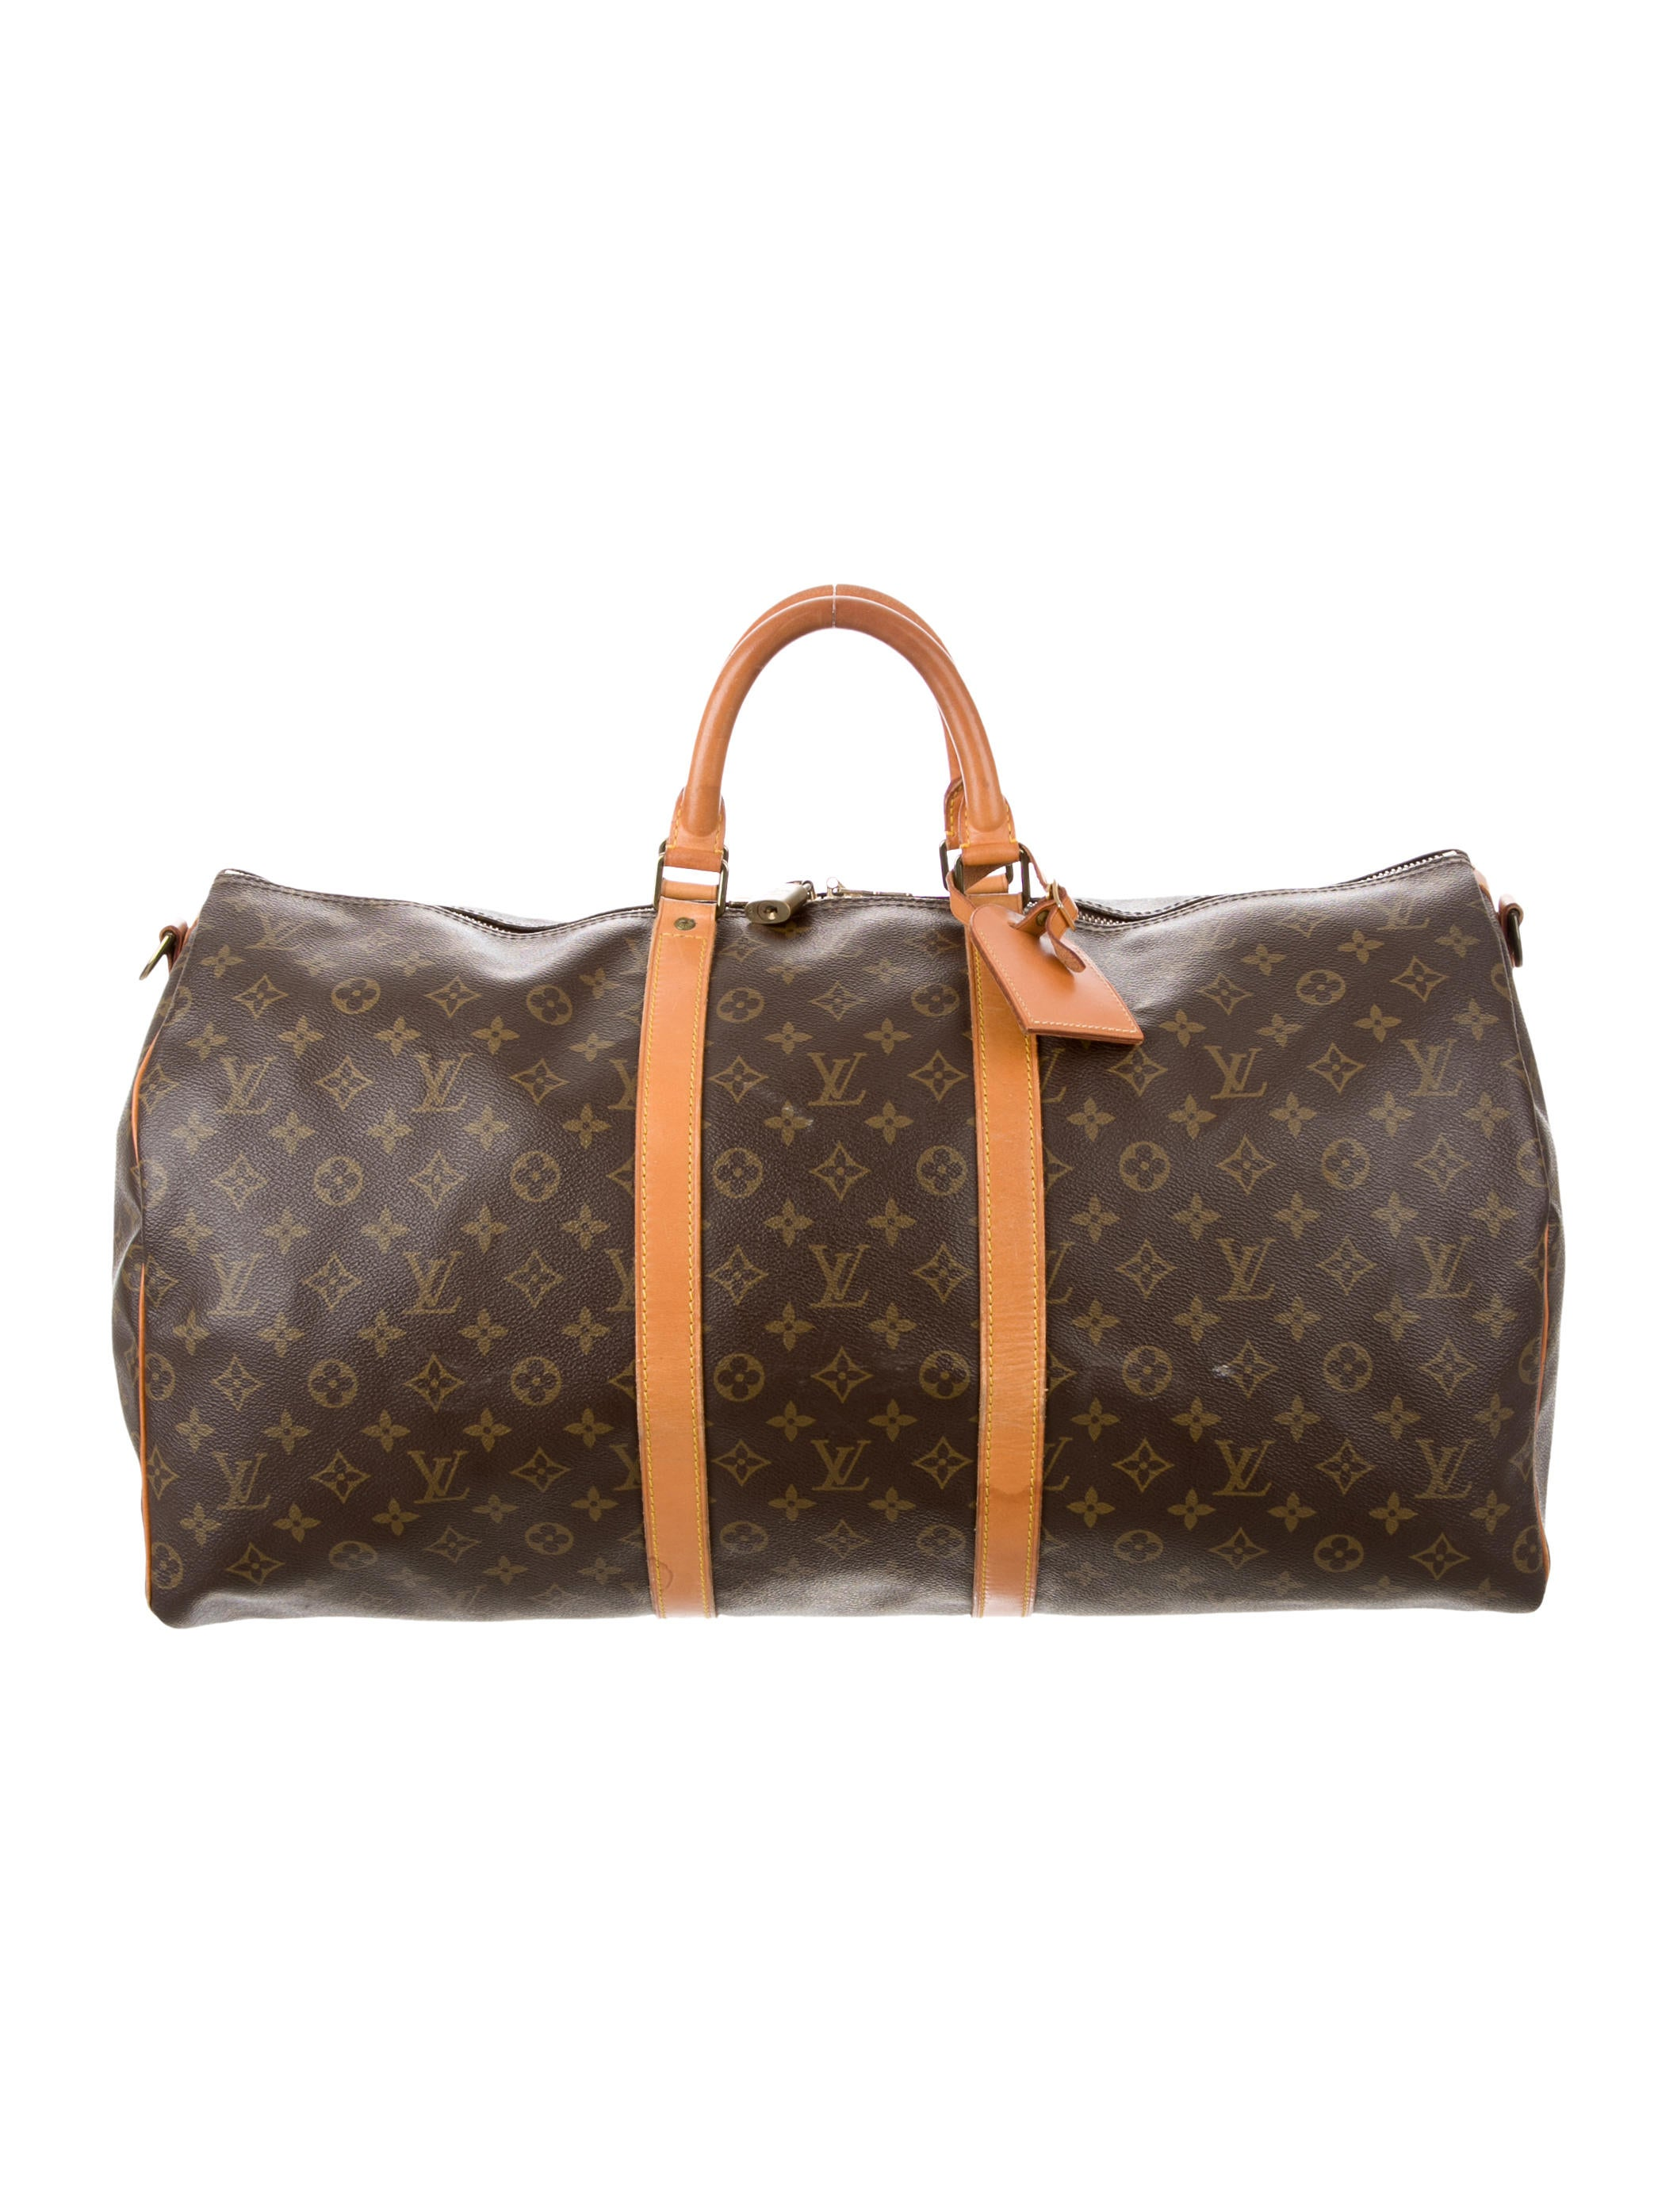 louis vuitton monogram keepall 55 bags lou119274 the. Black Bedroom Furniture Sets. Home Design Ideas